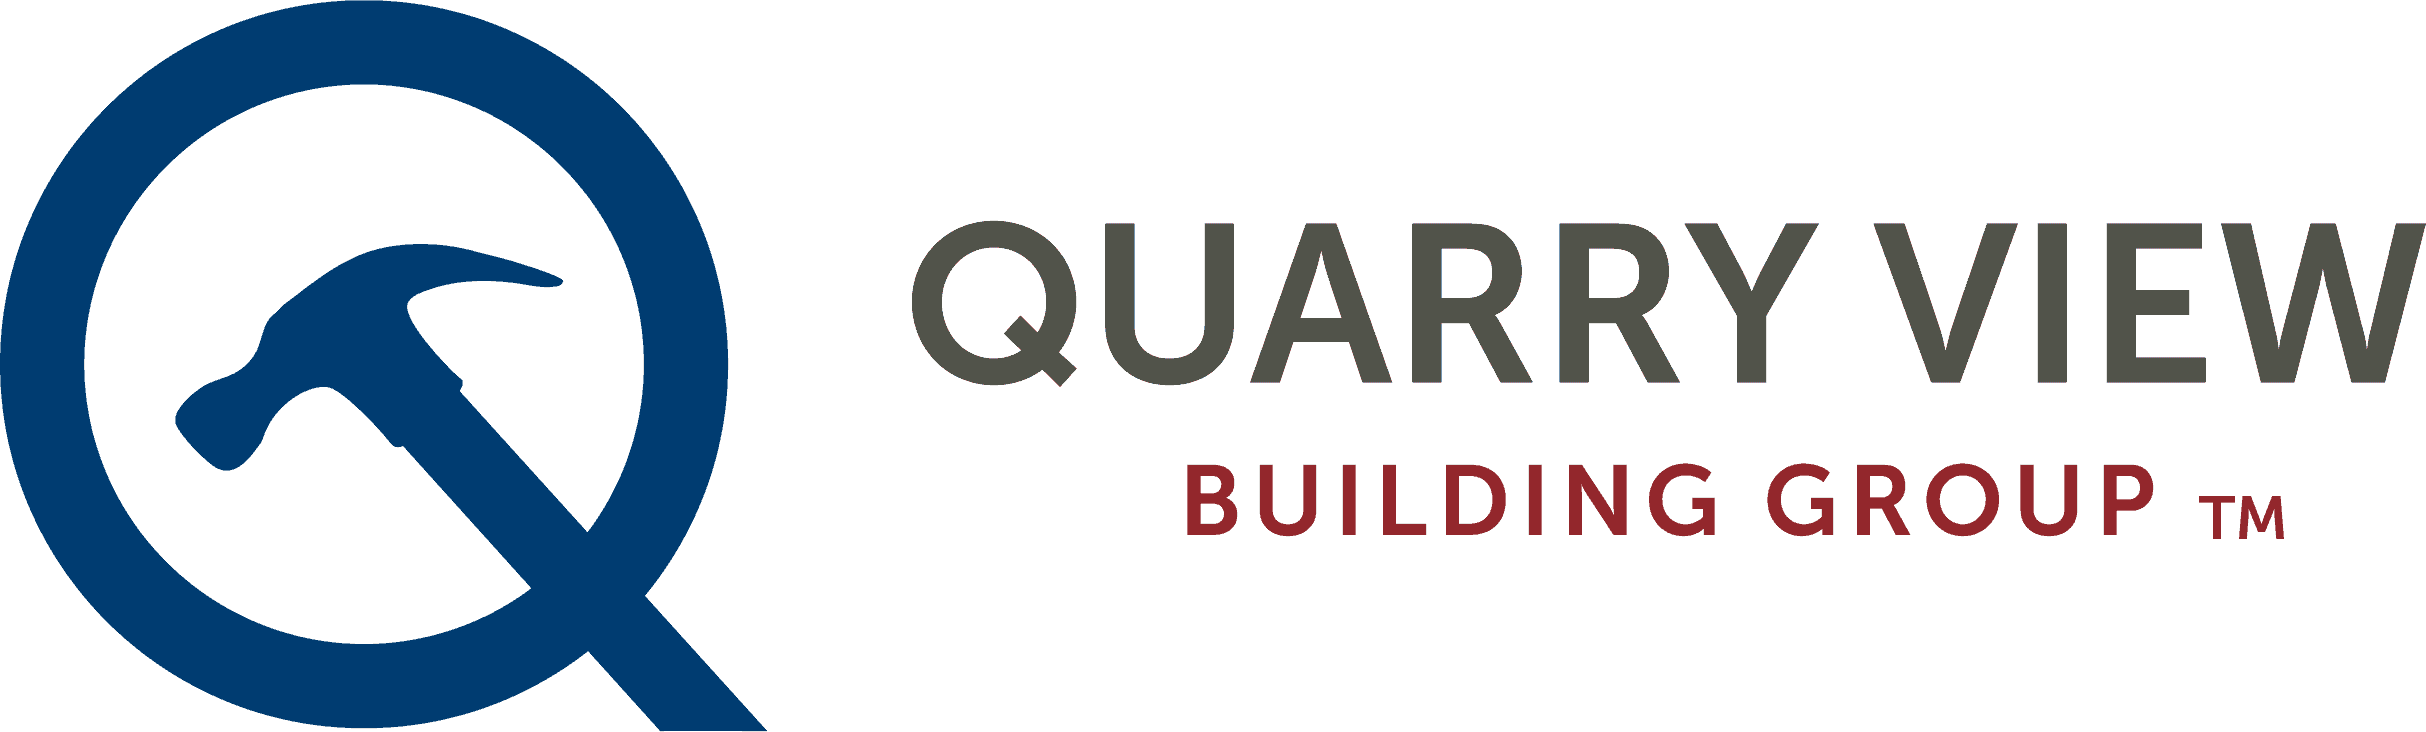 Quarry View Building Group